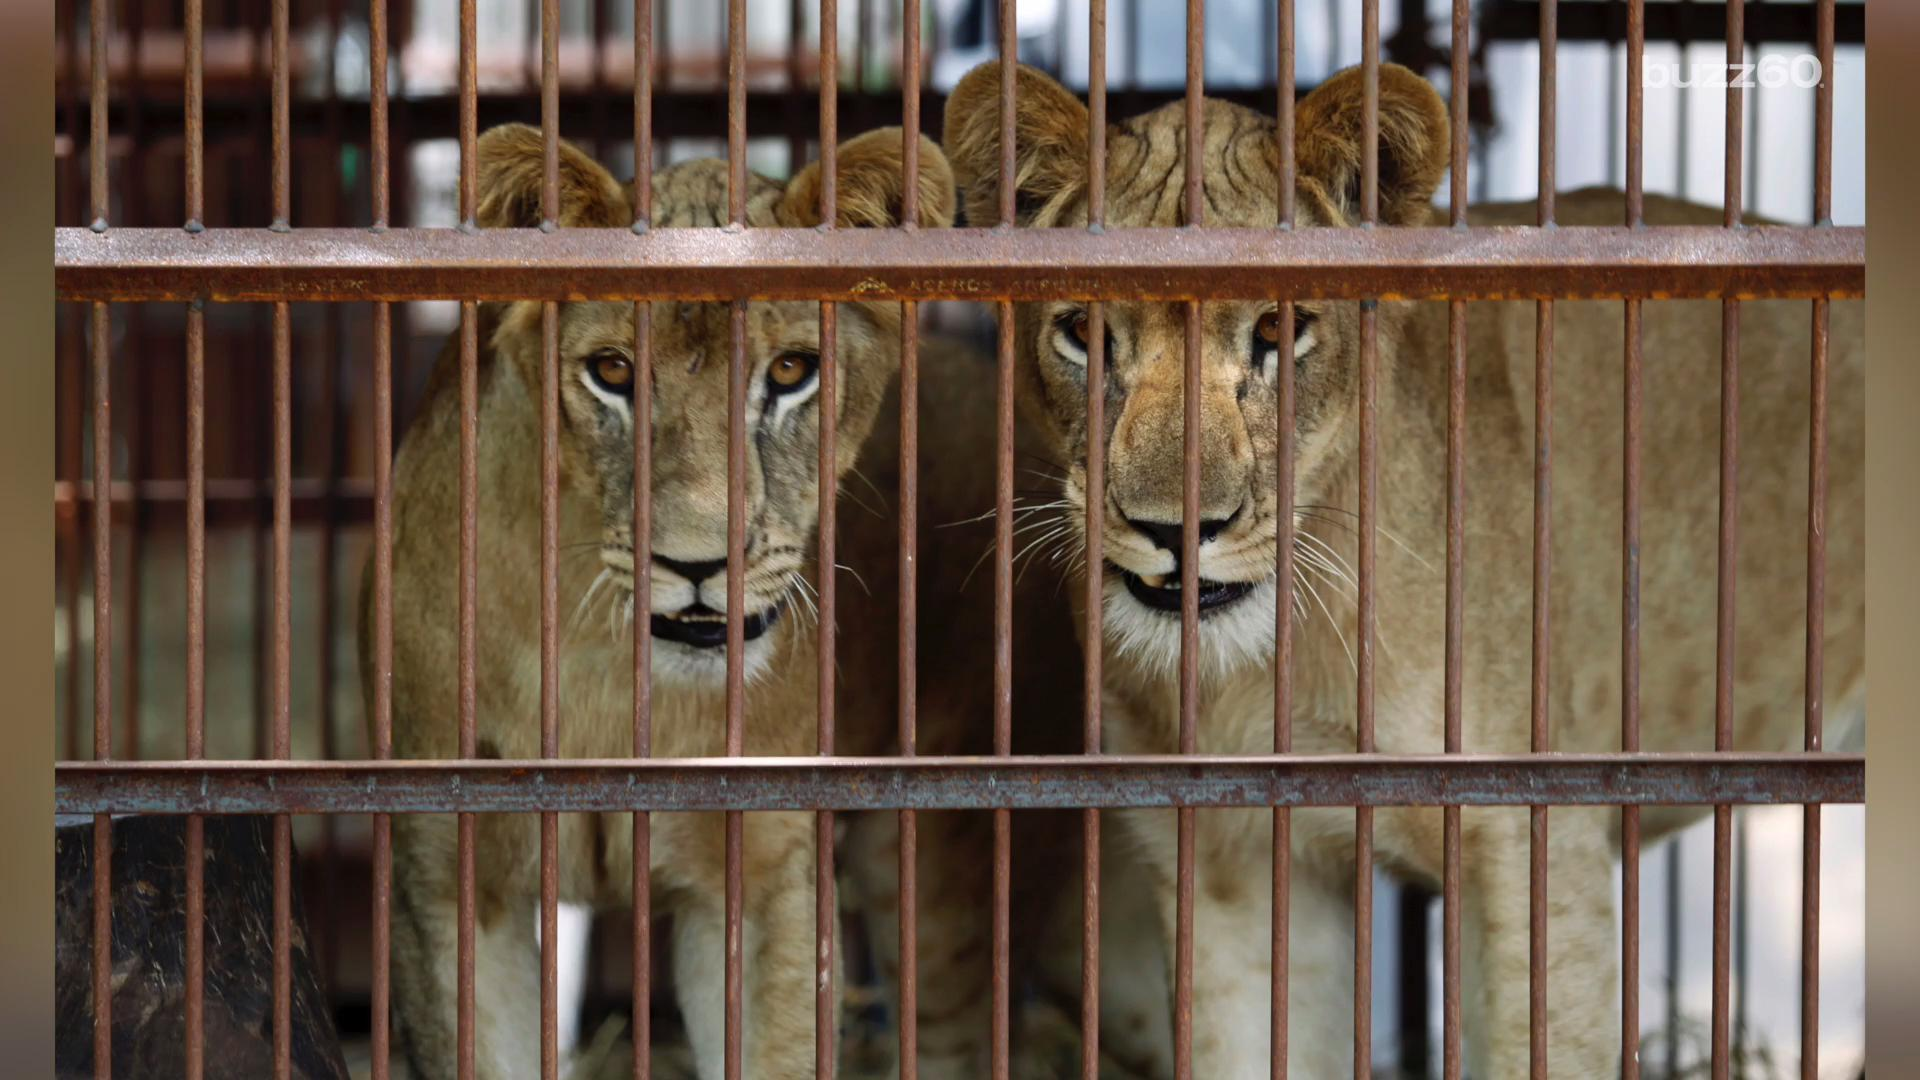 One of the Largest Circus Lion Rescues Ever